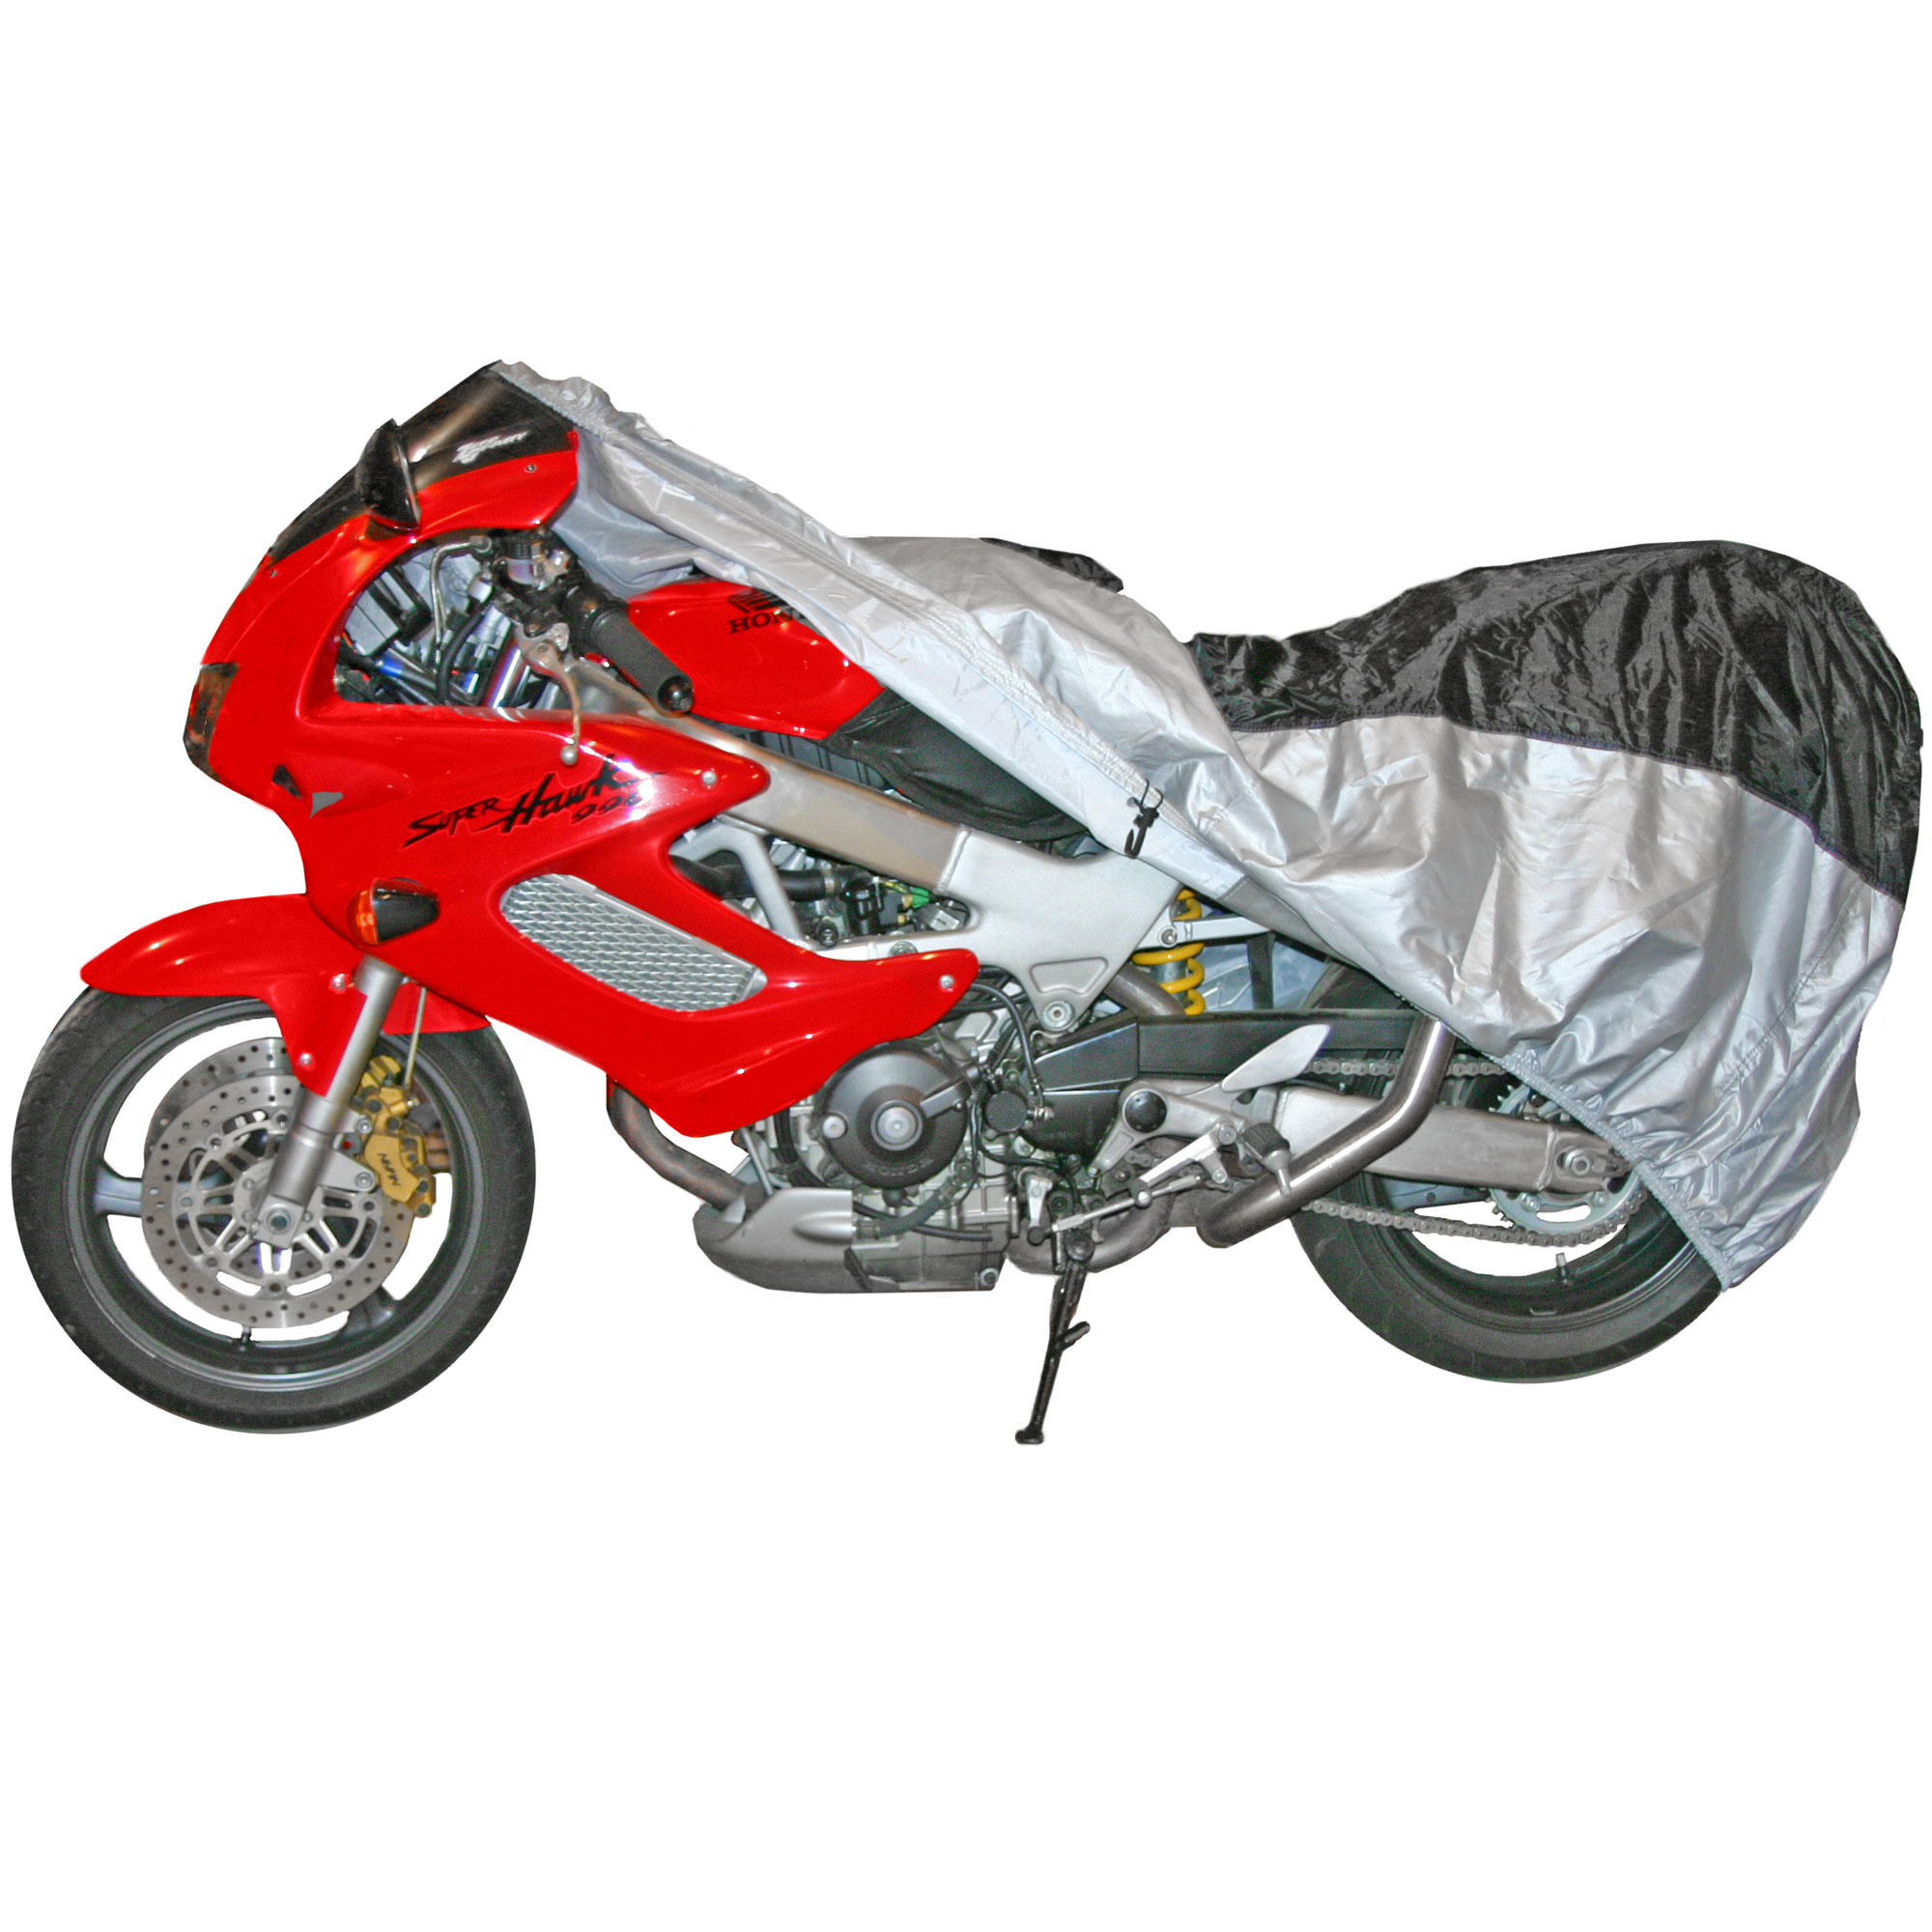 Large Dust Cover for Sportbike Street Motorcycles